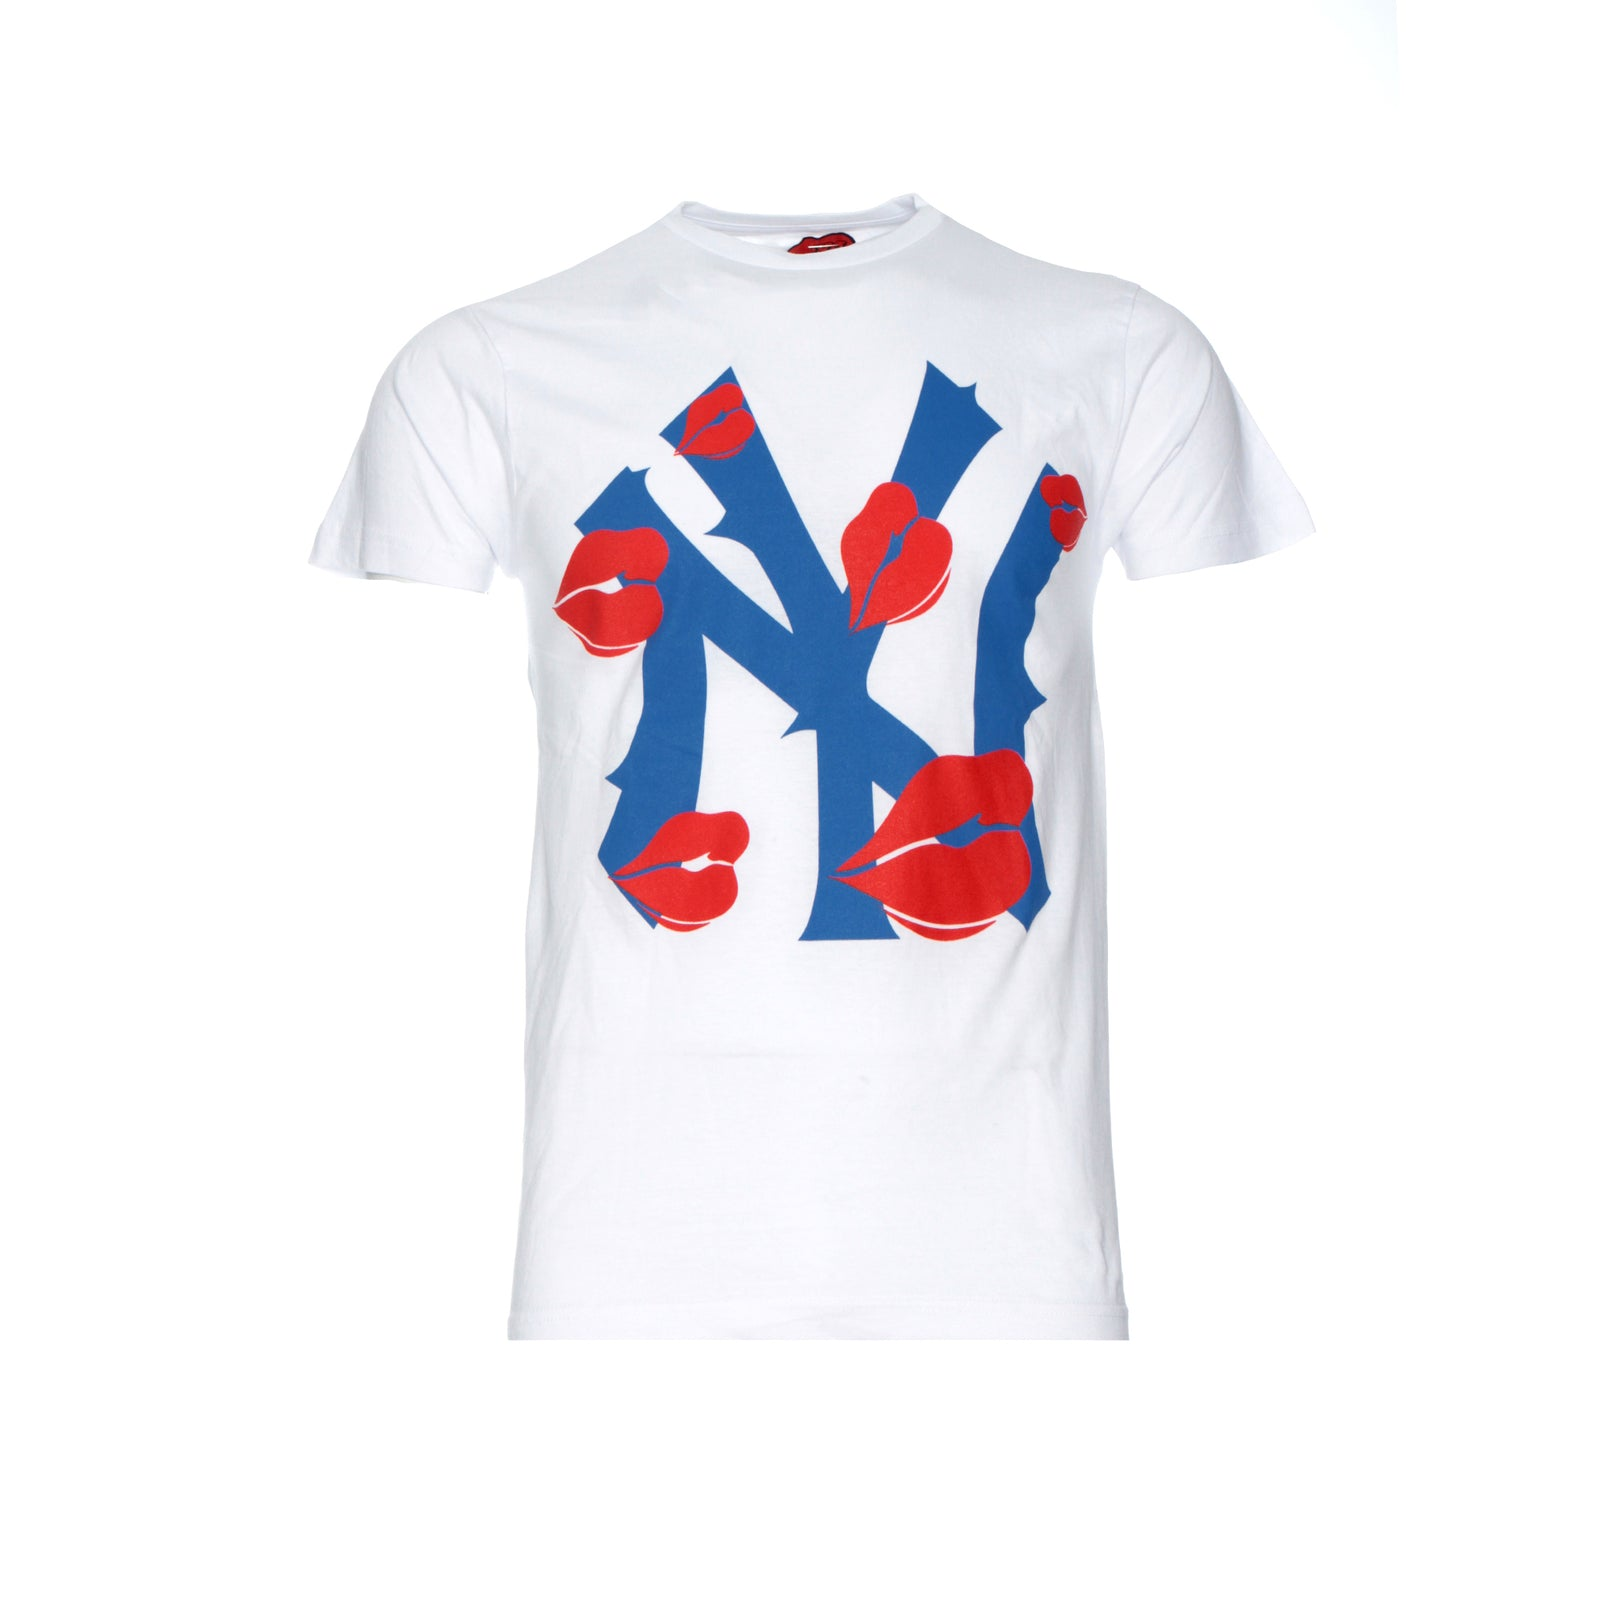 La Ropa New York Is Kissing Me Men's SS T-Shirt